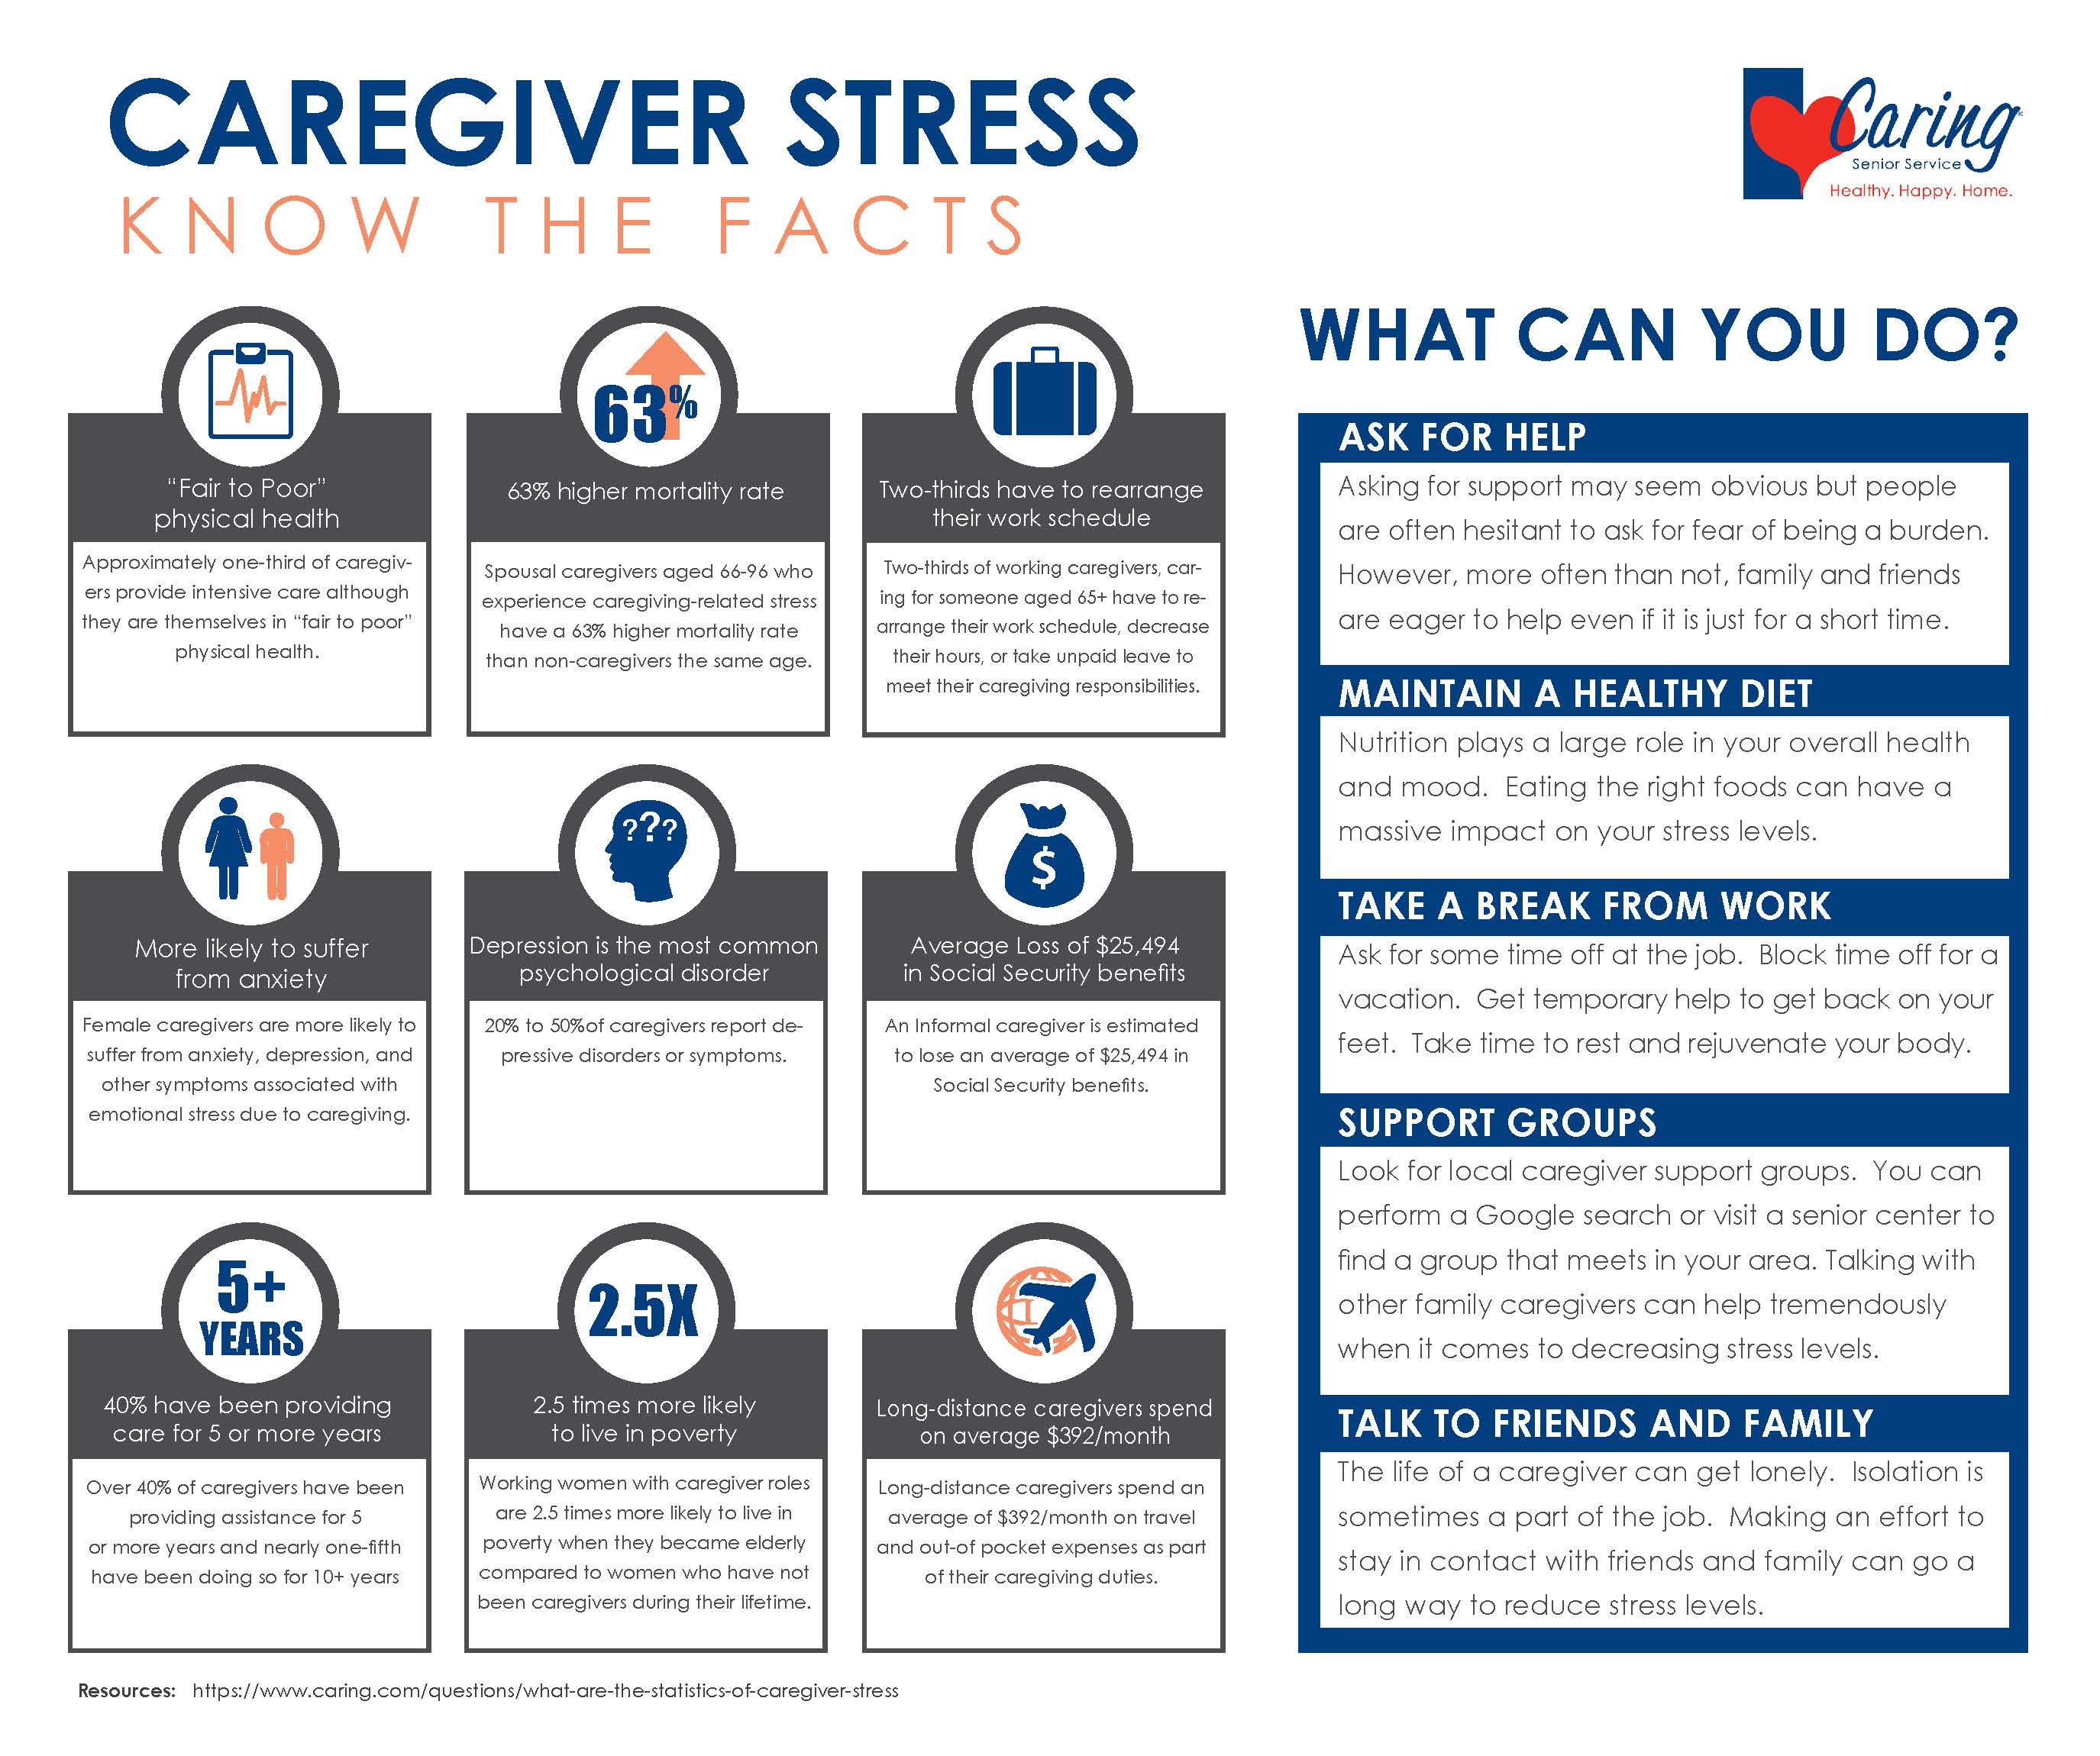 Caregiver Stress Fact Sheet